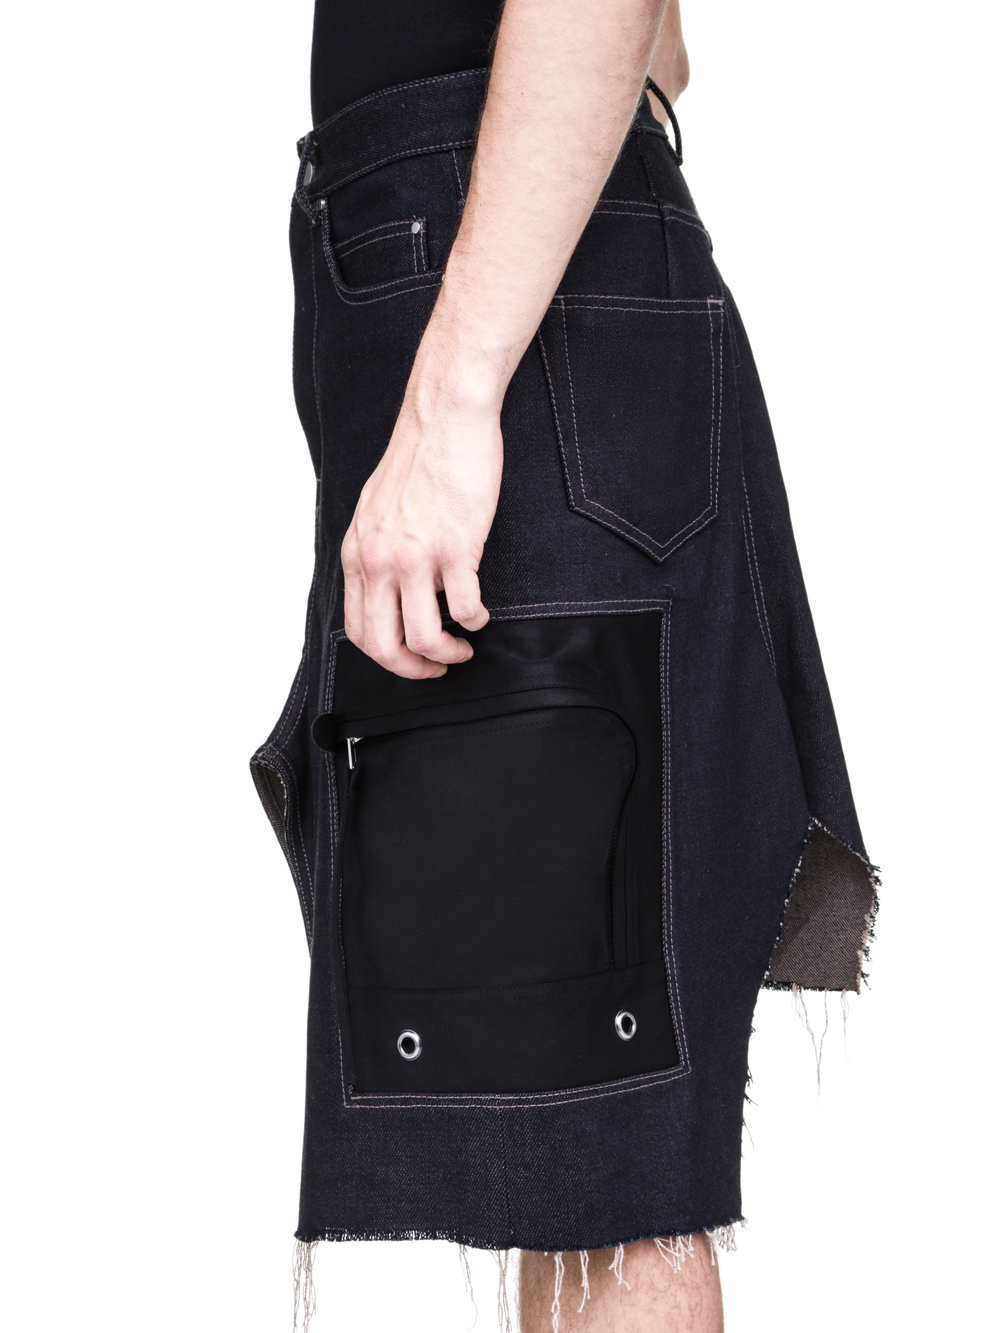 RICK OWENS OFF-THE-RUNWAY CARGO SKIRT IN 18OZ INDIGO DIRTY WEFT DENIM